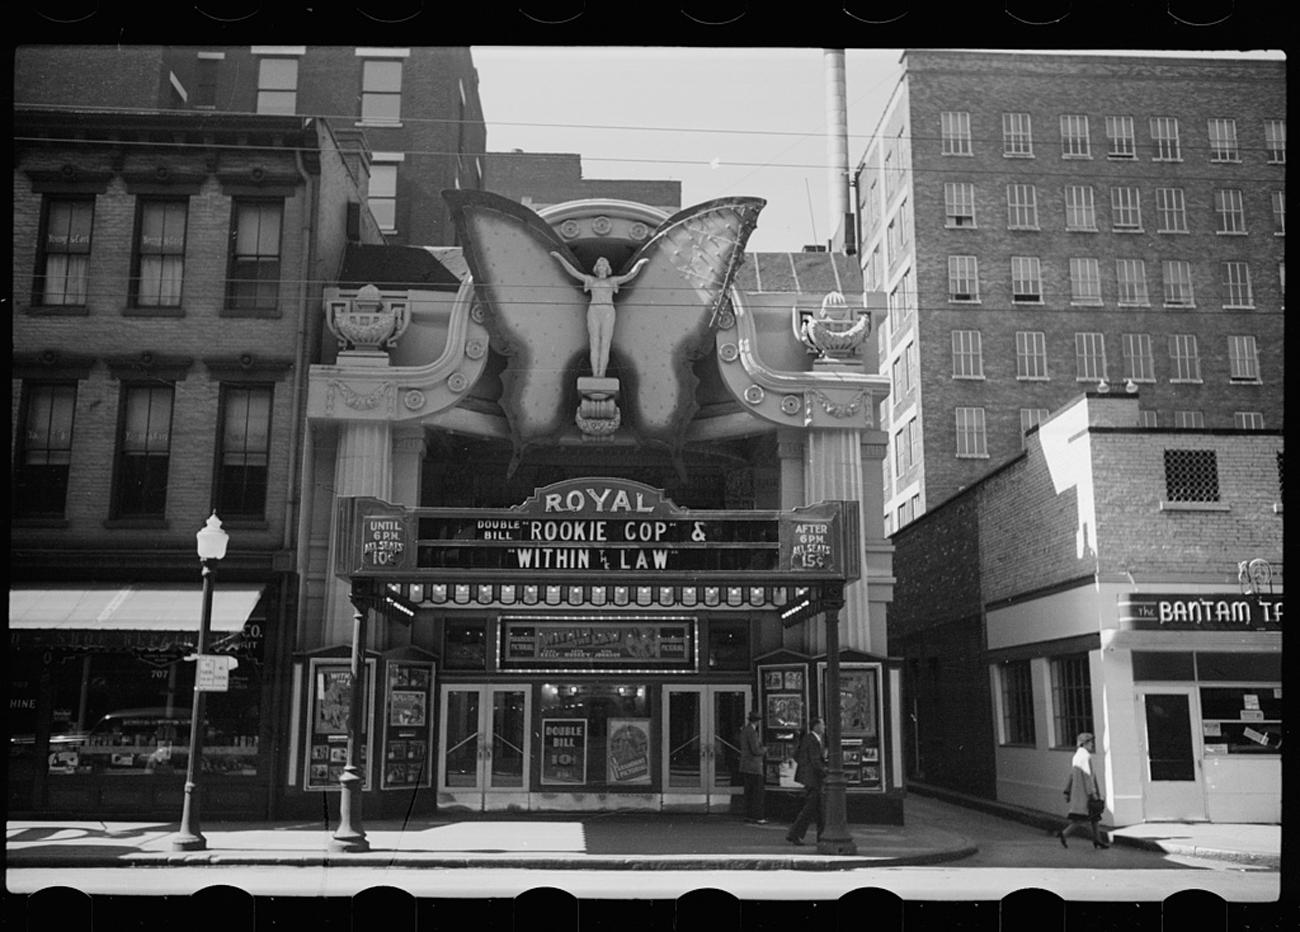 """Theater, Cincinnati, Ohio"" shows The Royal Theatre in October 1938. / Image: John Vachon for the U.S. Farm Security Administration/Office of War Information accessed via the Library of Congress Archives // Published: 3.4.19"